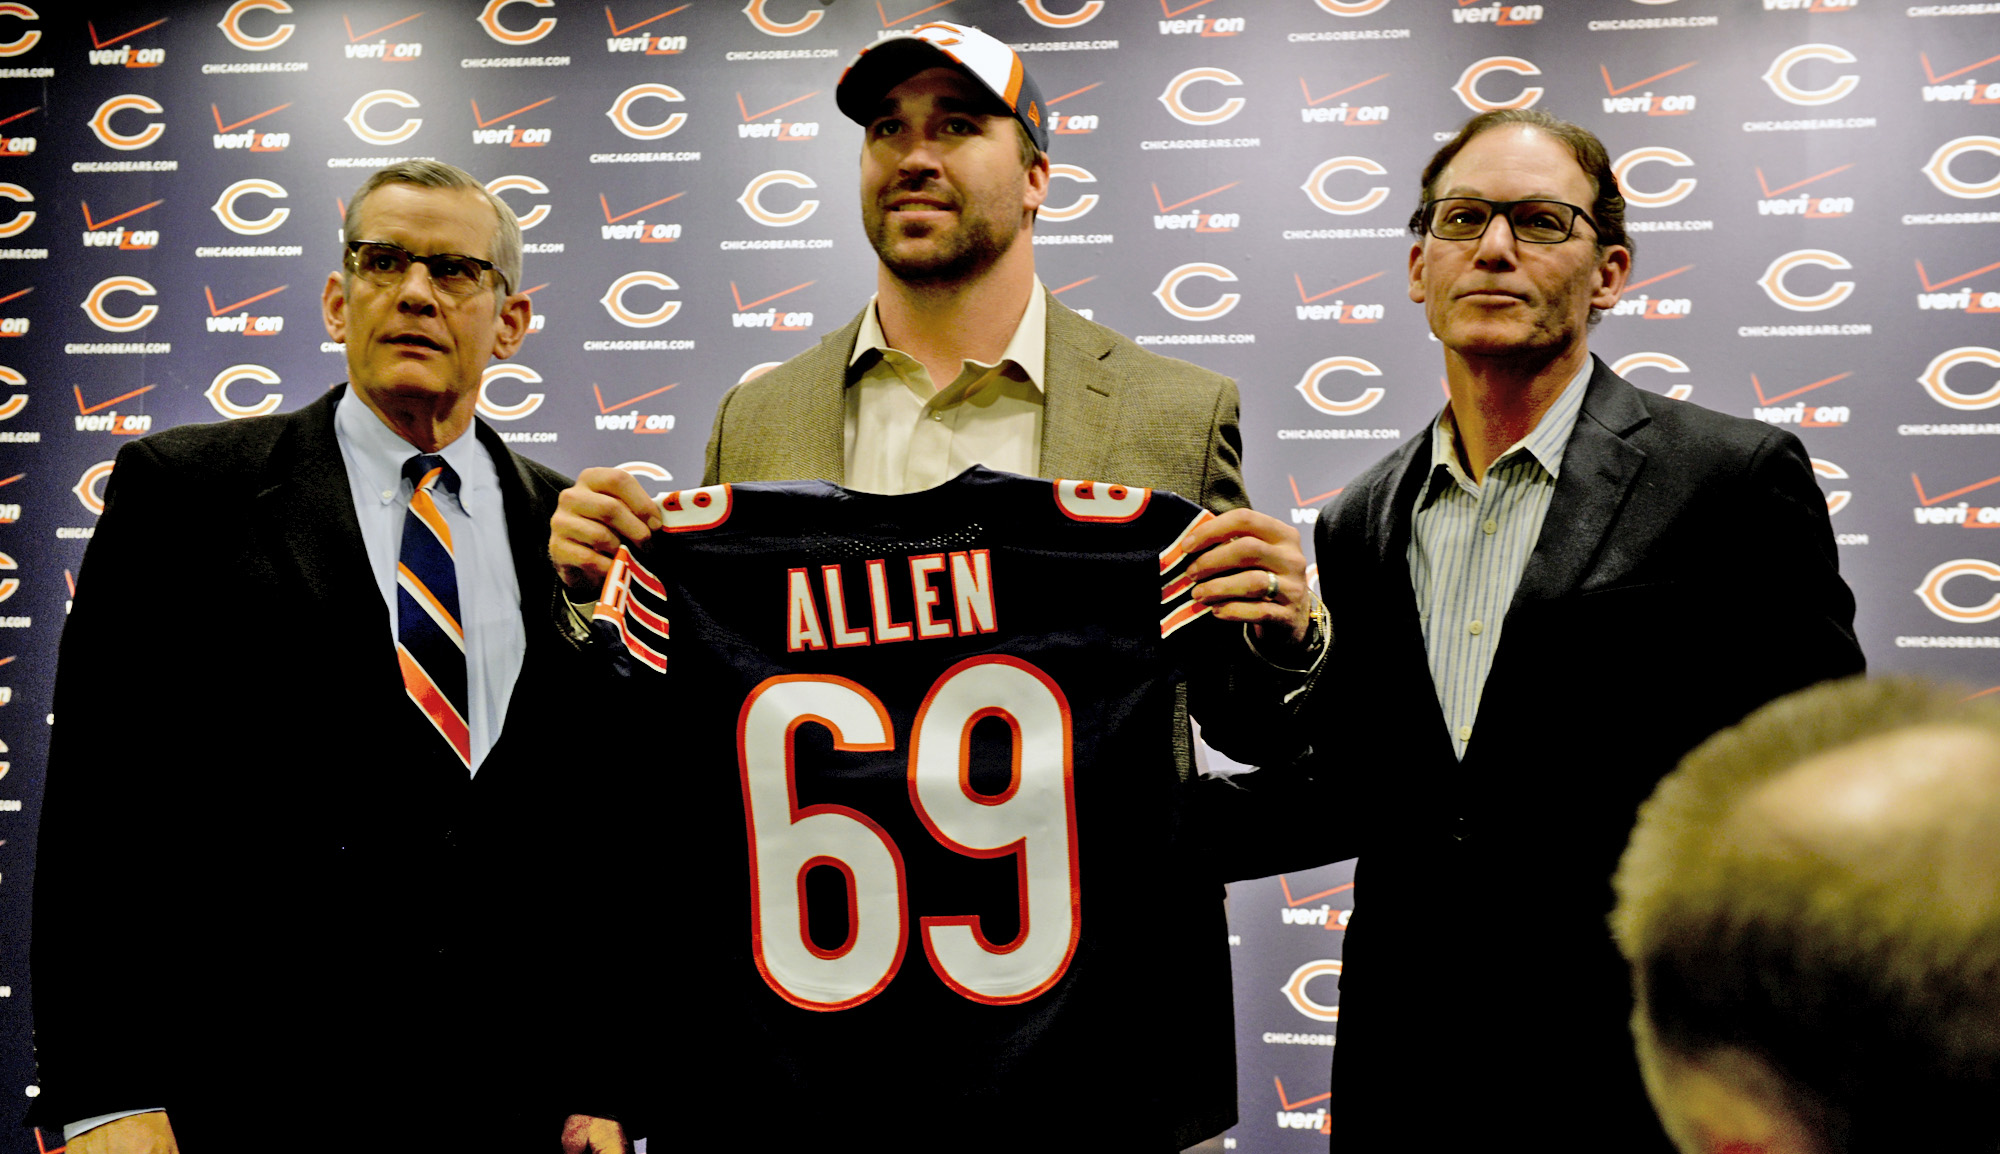 Chicago Bears general manager Phil Emery, left, poses for a photo with new Bears NFL football player Jared Allen, center, and his agent Ken Harris at a news conference where Allen was introduced Monday, March 31, 2014, in Lake Forest, Ill